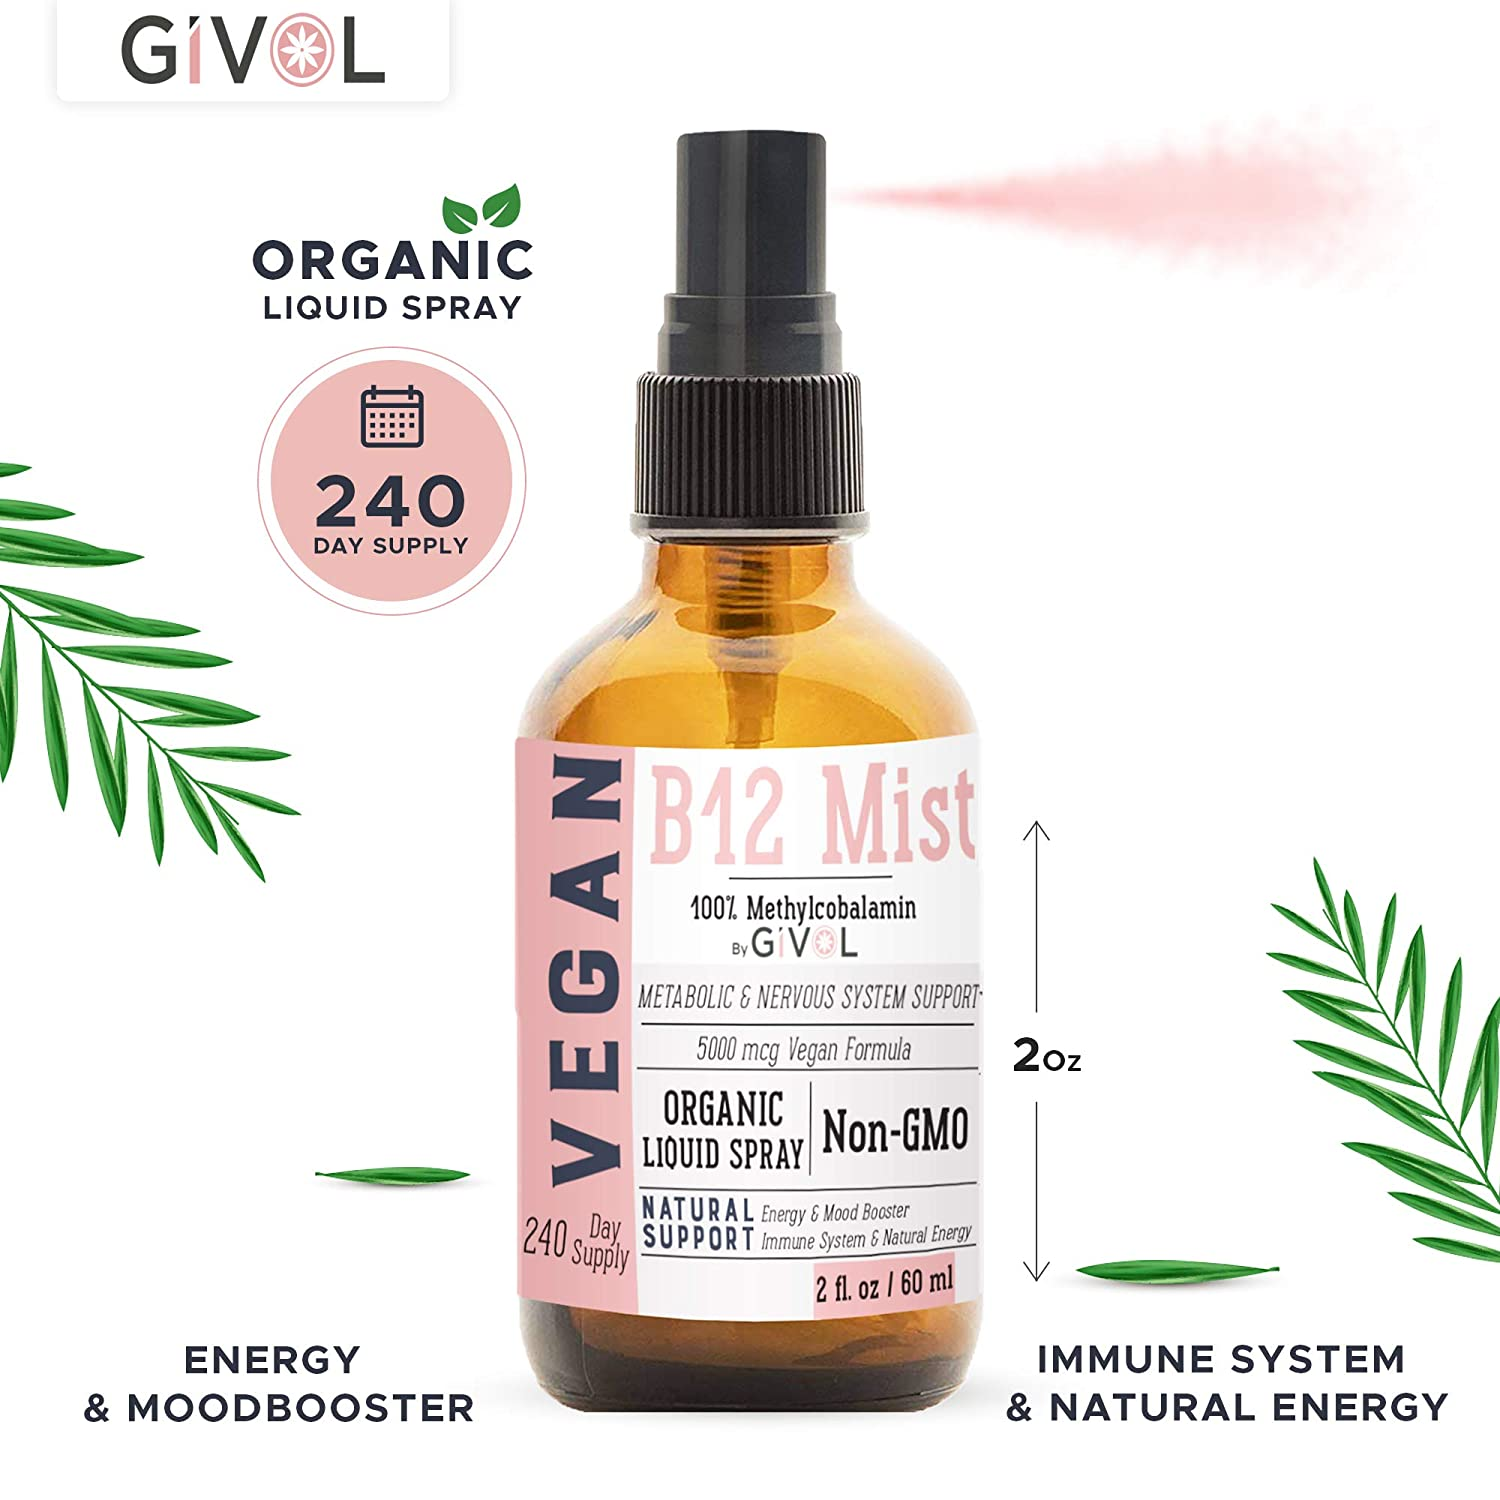 LOGIC REMEDY Vegan Methylcobalamin- Vitamin B12 Liquid Mist -240 x 5,000 mcg, Sugar Free - Non-GMO Vegan - Gluten Free - Paleo - Glass Bottle- Made & Bottled in The USA, 2 Fluid Ounces-240 Day Supply